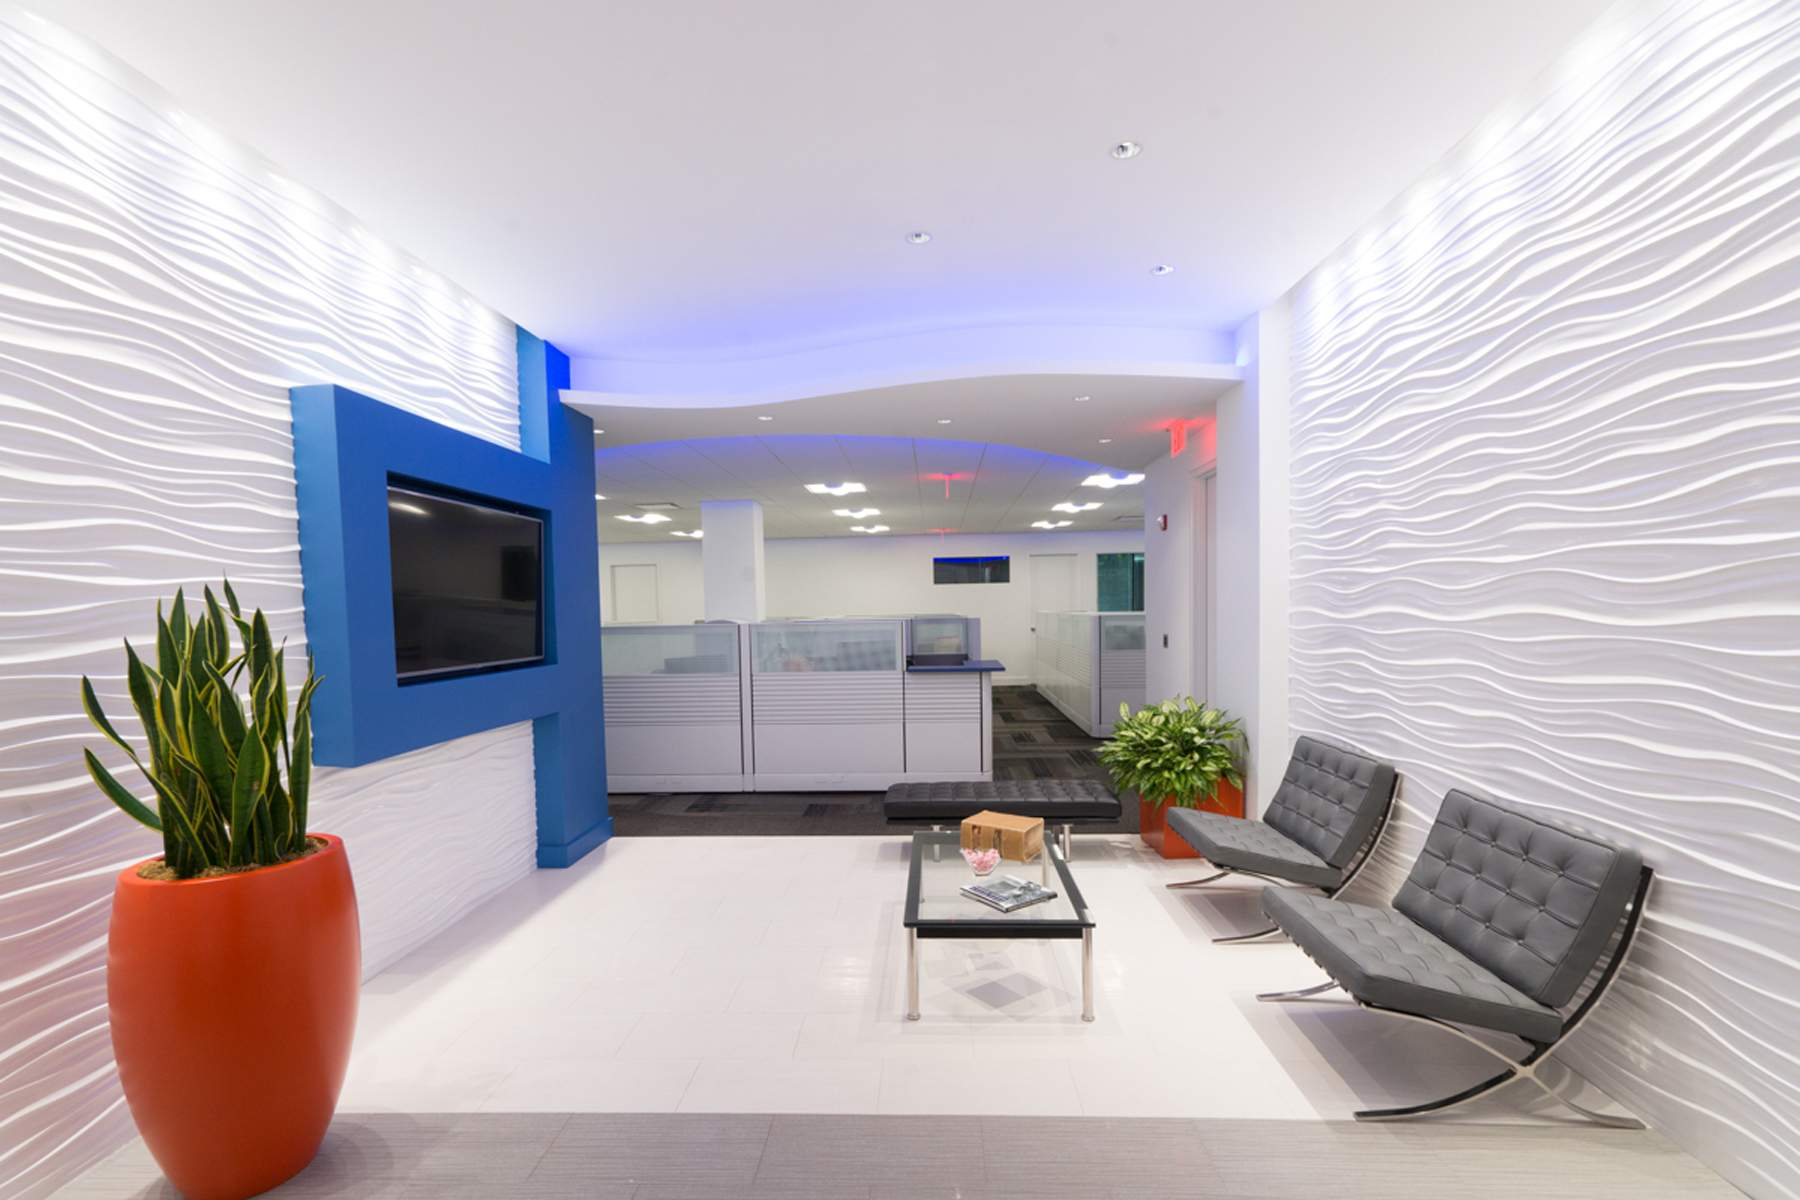 Prism Capital Partners has taken occupancy of a new 7,000-square-foot office in Bloomfield that has a modern workplace aesthetic with curved angles and color-changing illumination throughout.